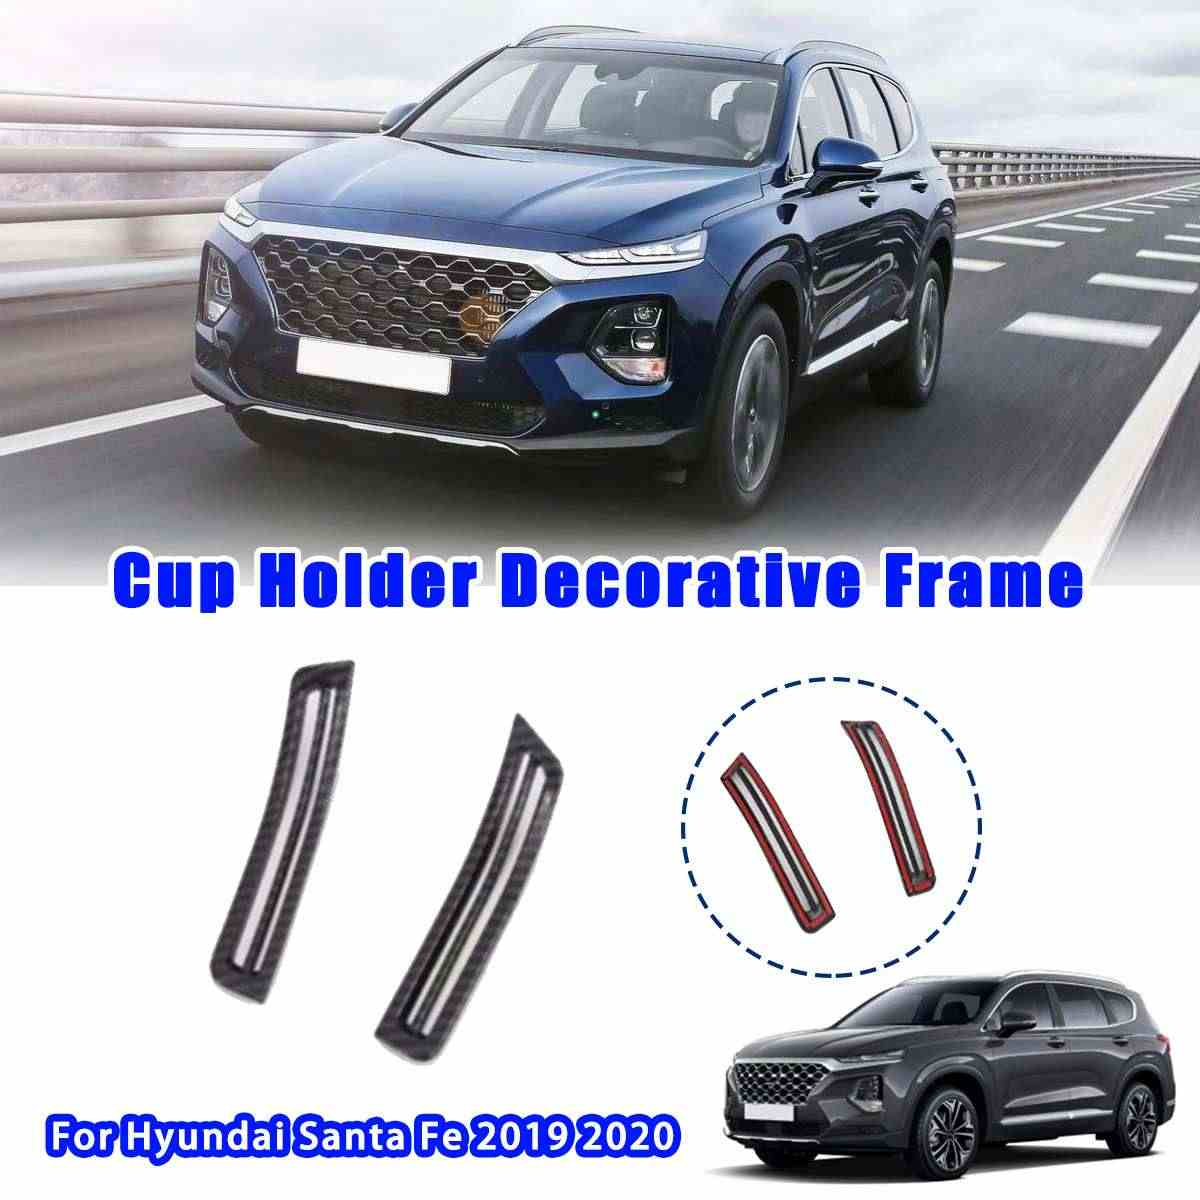 2x Auto Interieur Links Rechts Airconditioning Vent Cover Sticker Trim Styling Accessoires Voor Hyundai Santa Fe 2019 2020